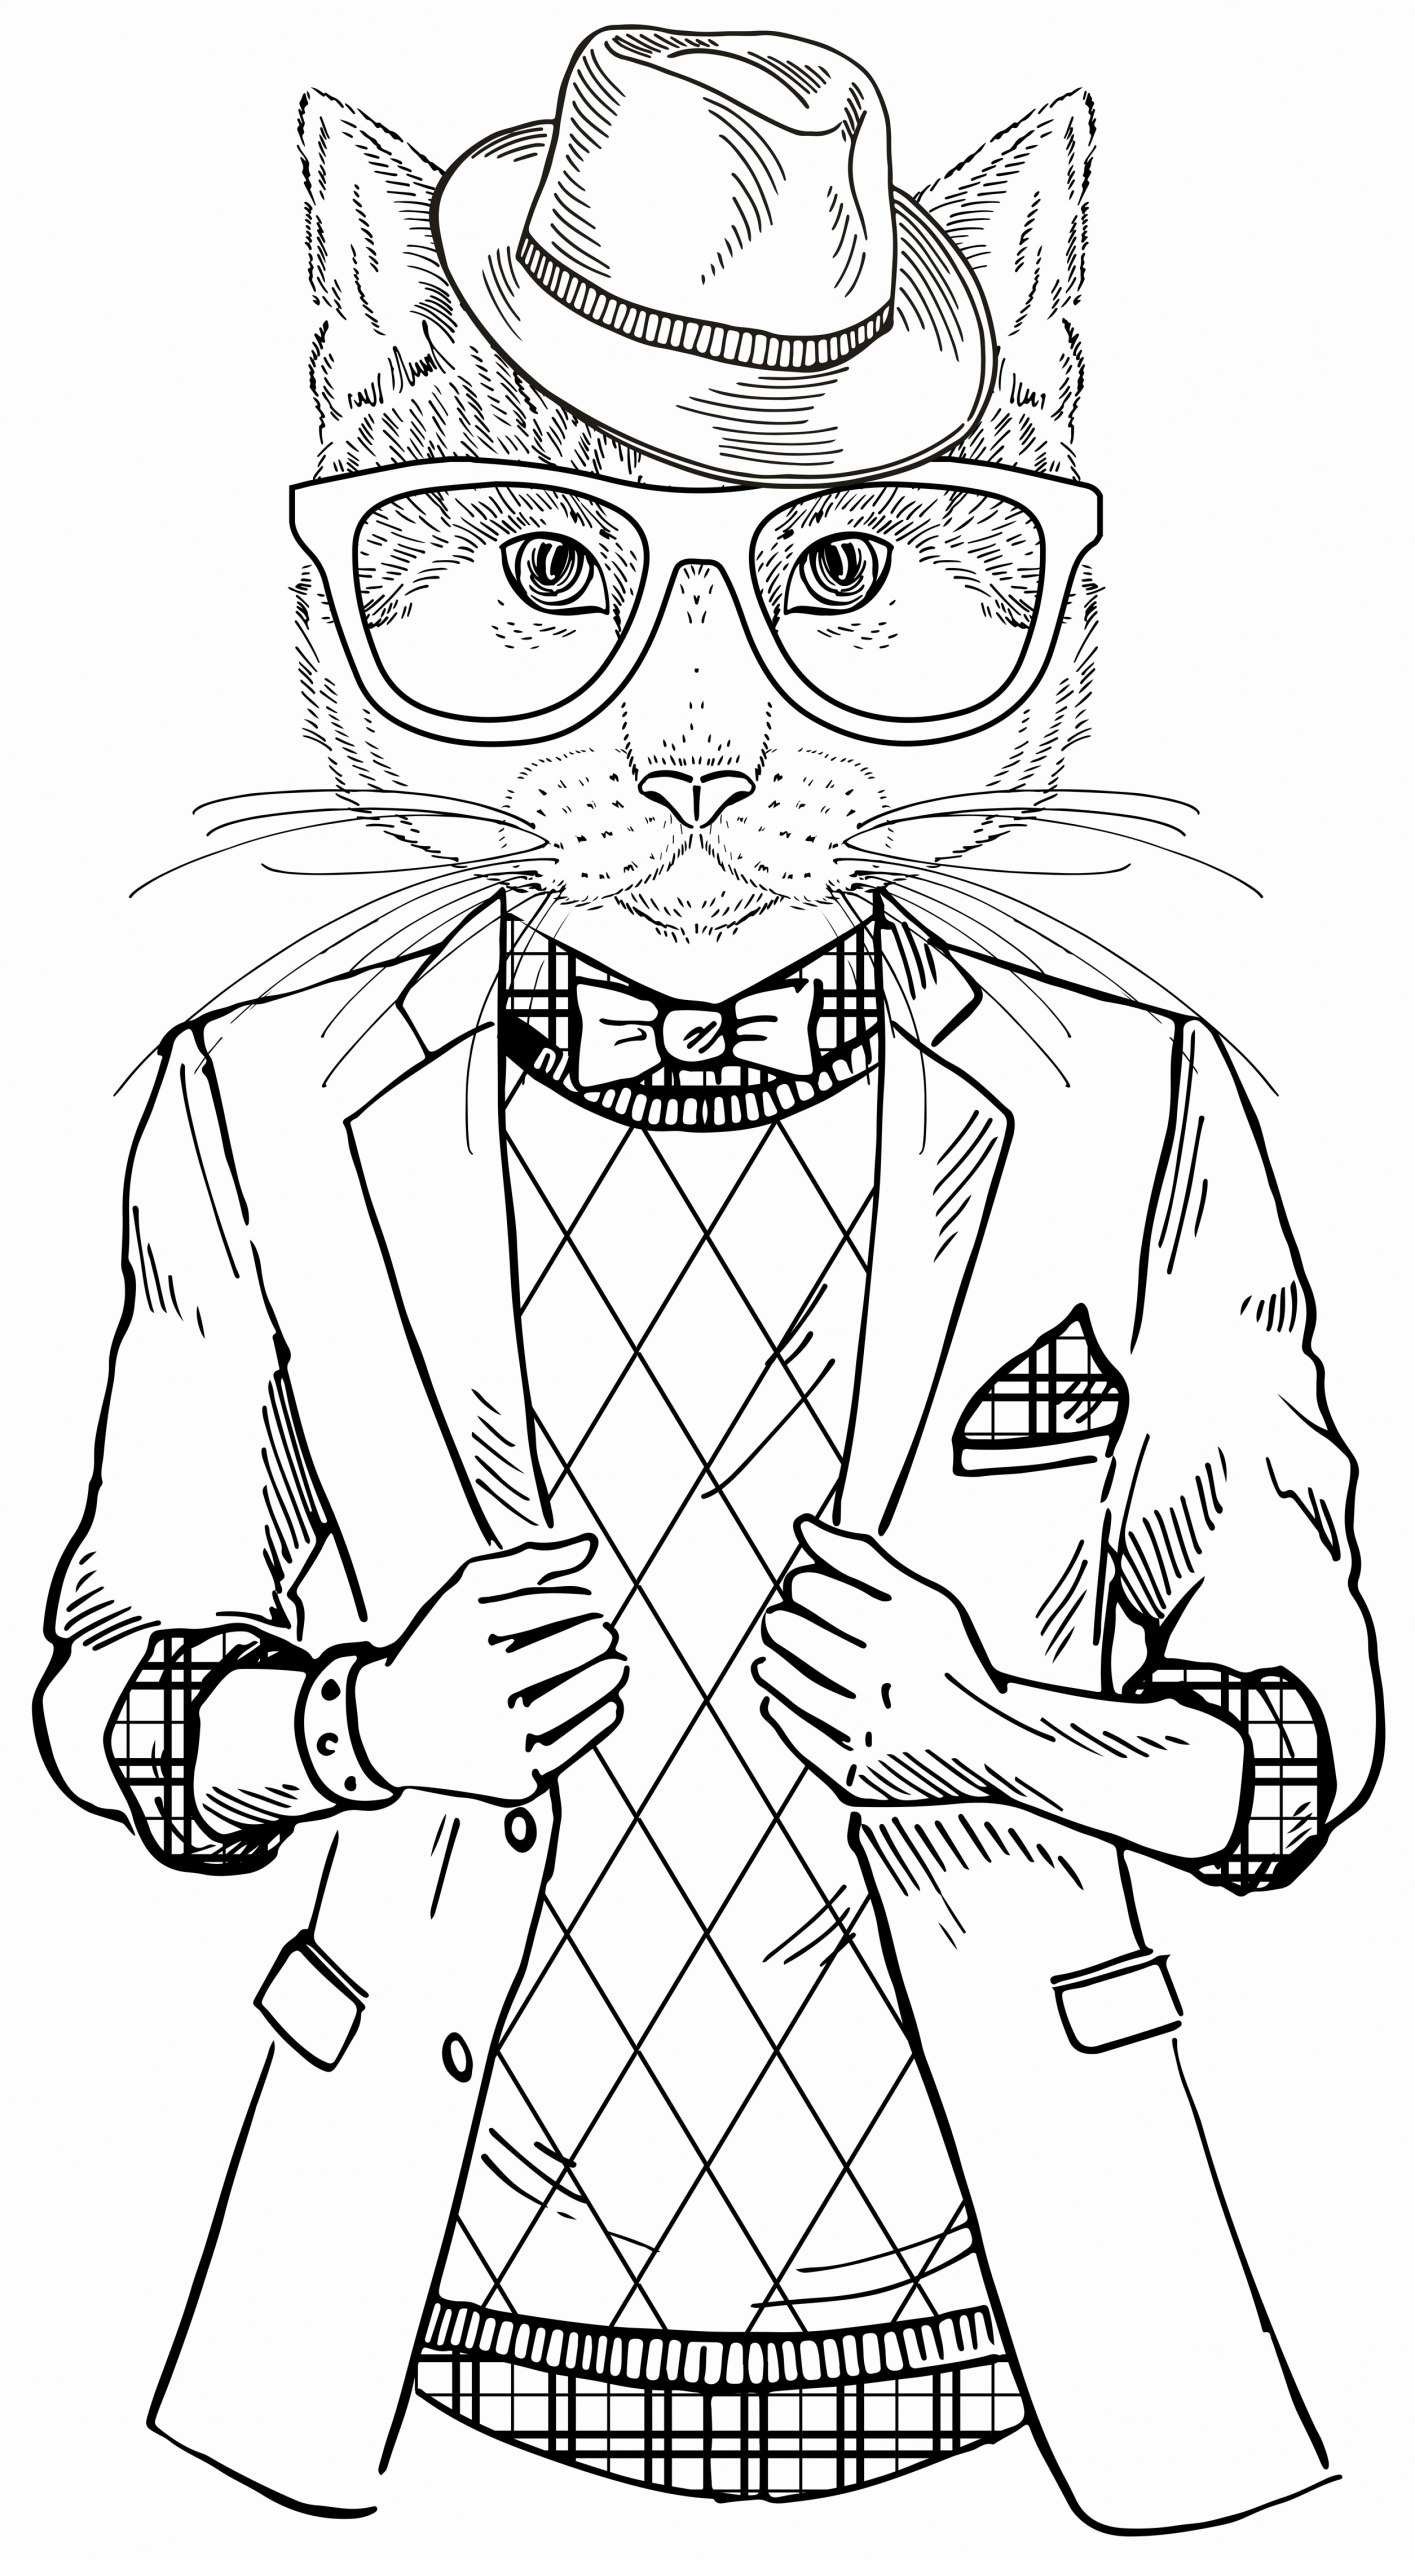 Cool Cat Coloring Pages For Kids To Print Out Cool Coloring Pages Cat Coloring Book Cat Coloring Page